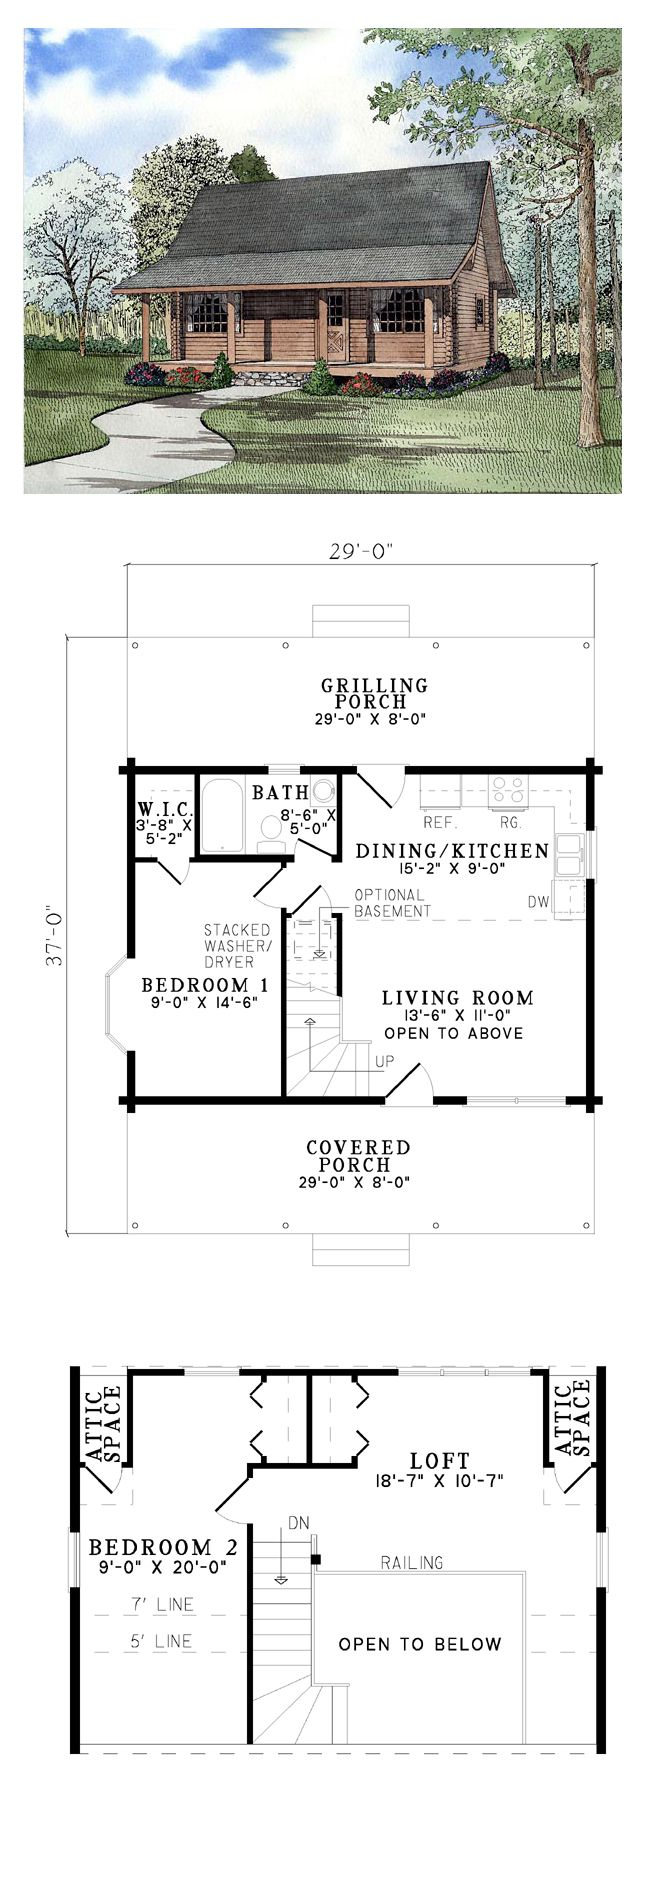 191 best images about farm on pinterest indoor arena for Rear access home designs